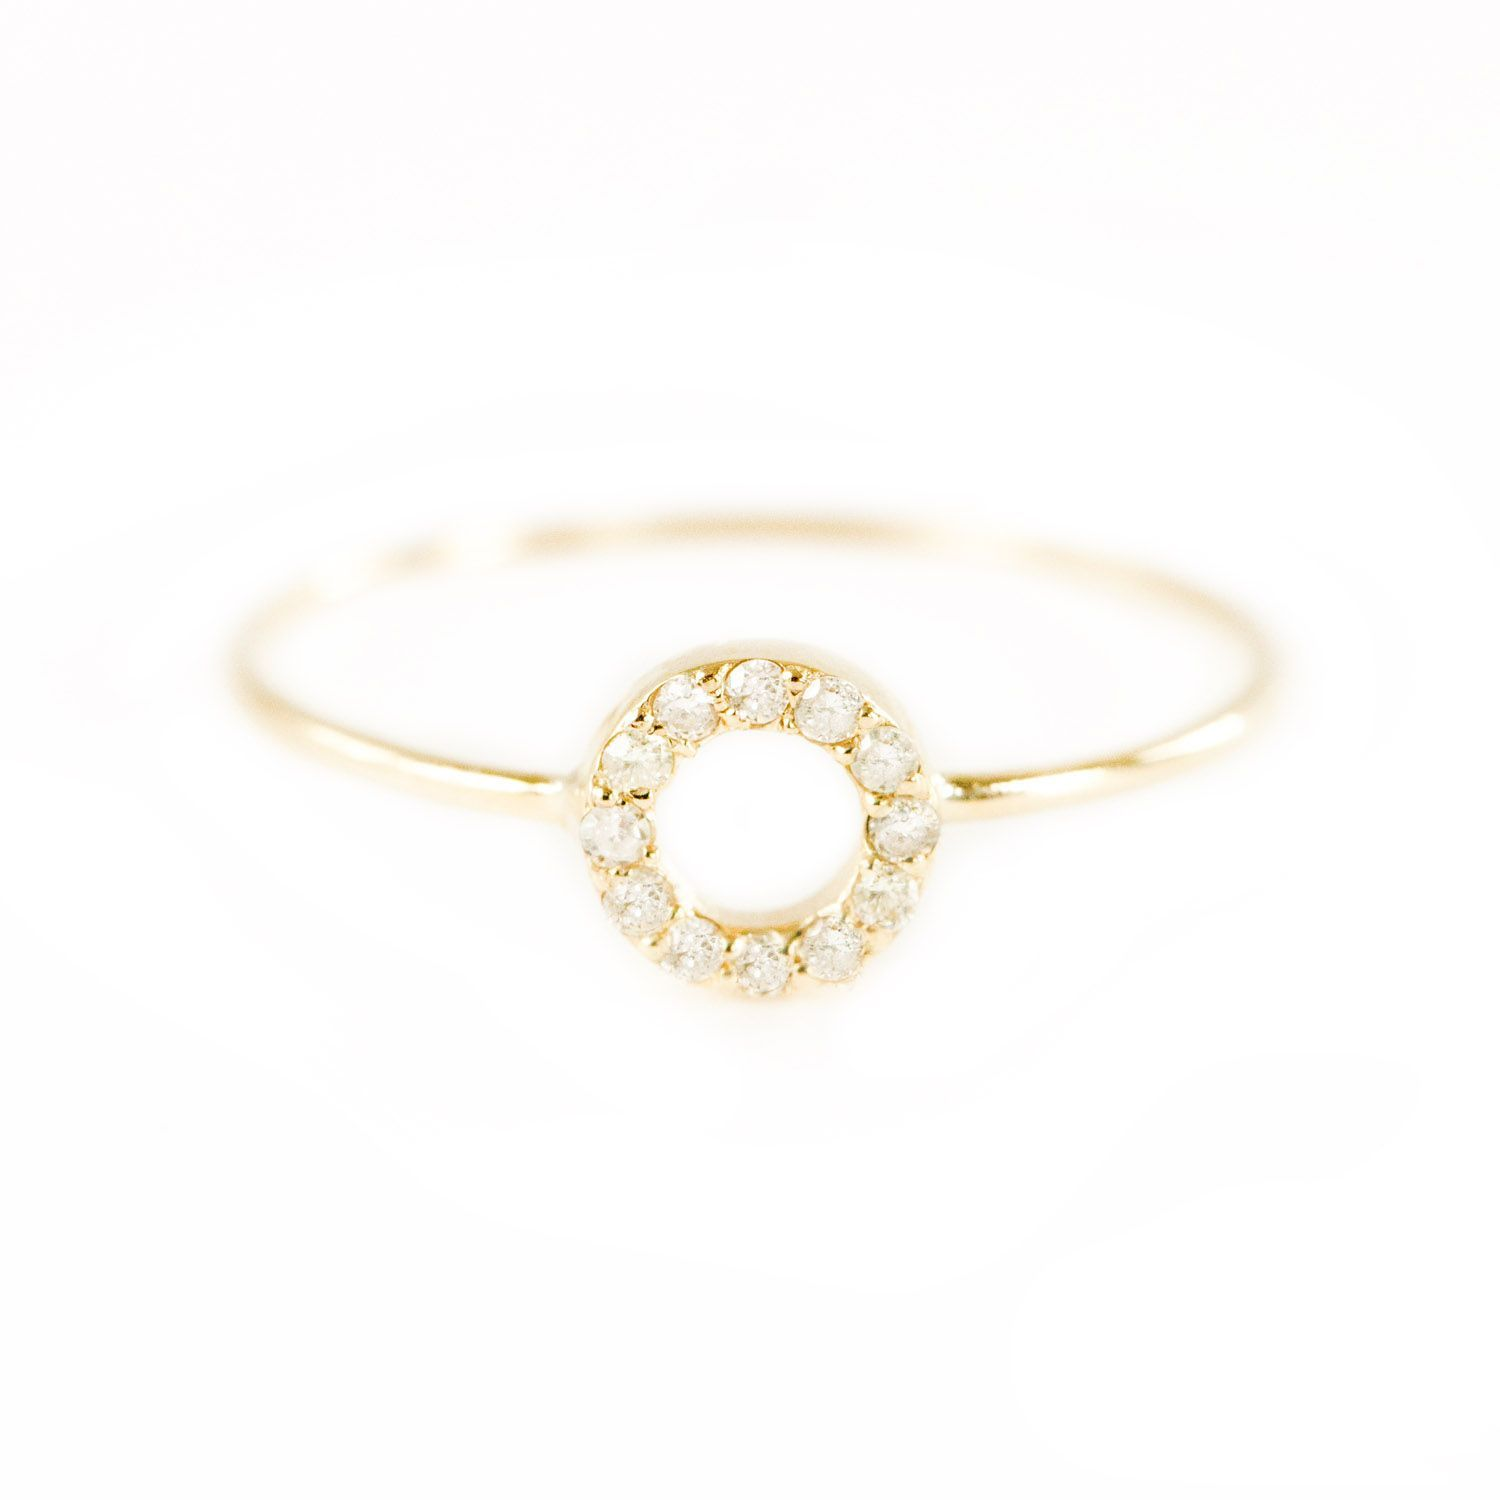 29++ Good place to buy gold jewelry info